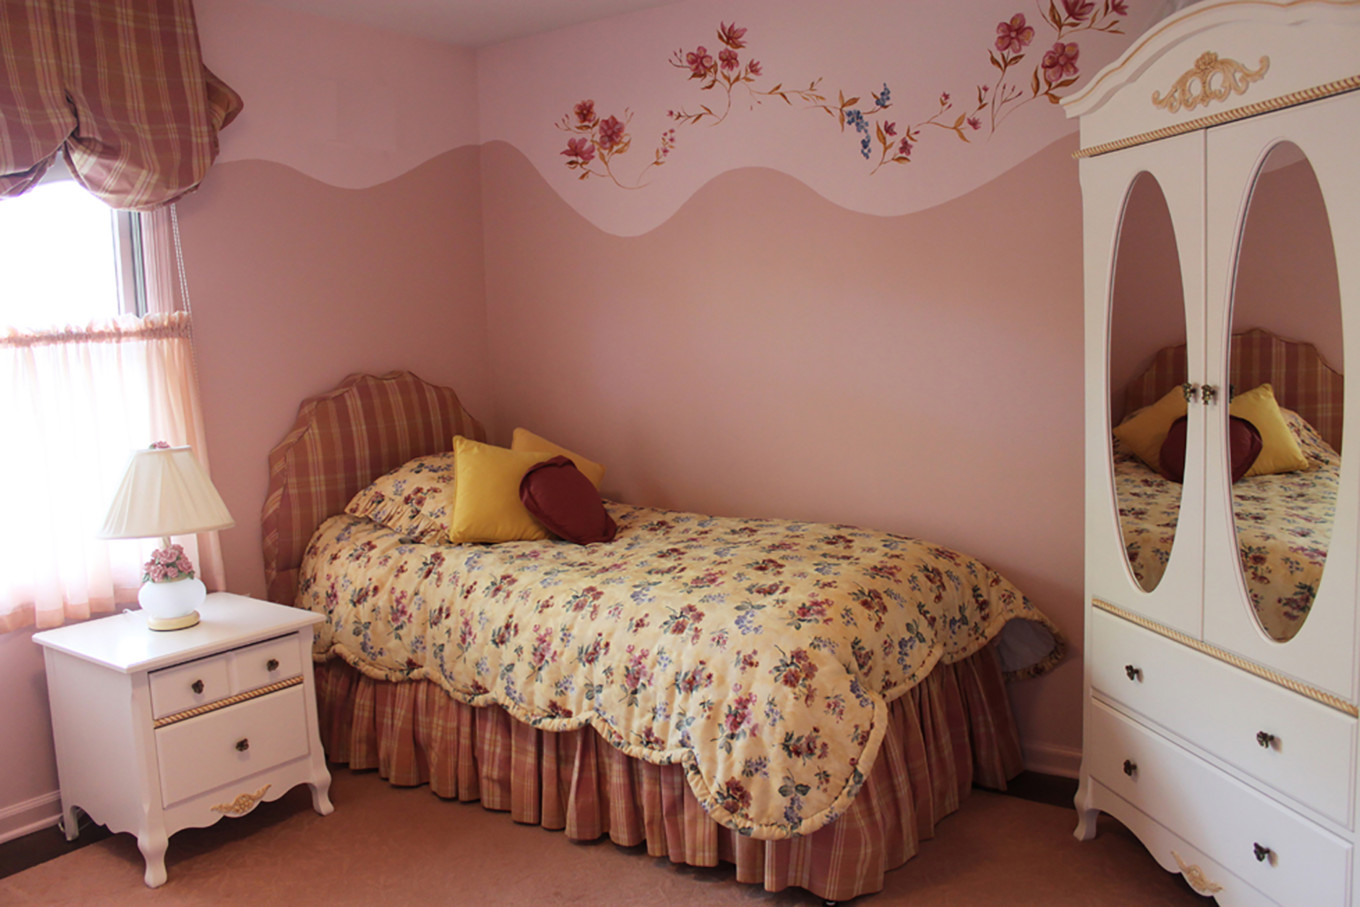 Girl's Bedroom in Pink and Peach